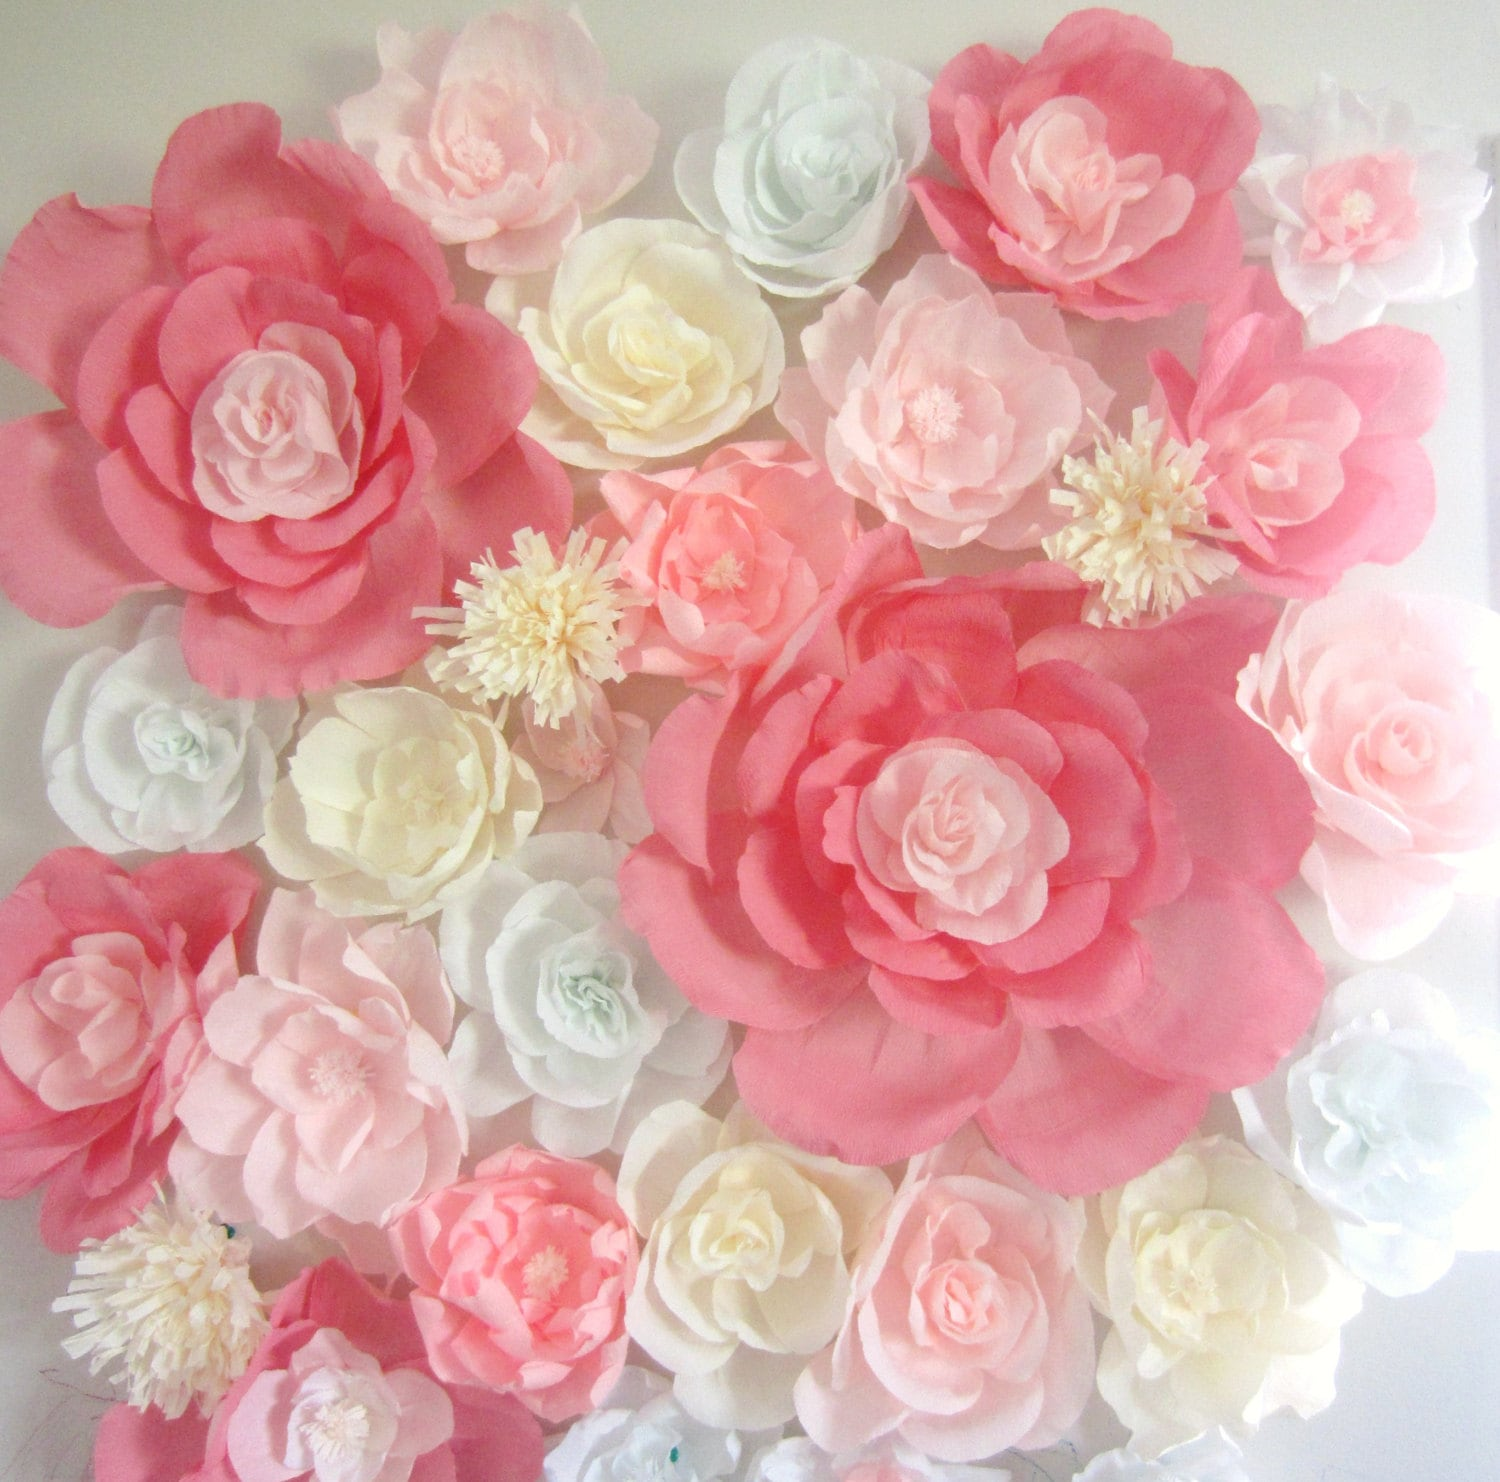 Giant Paper Flower Wall Display 4ft X 4ft Wedding Backdrop